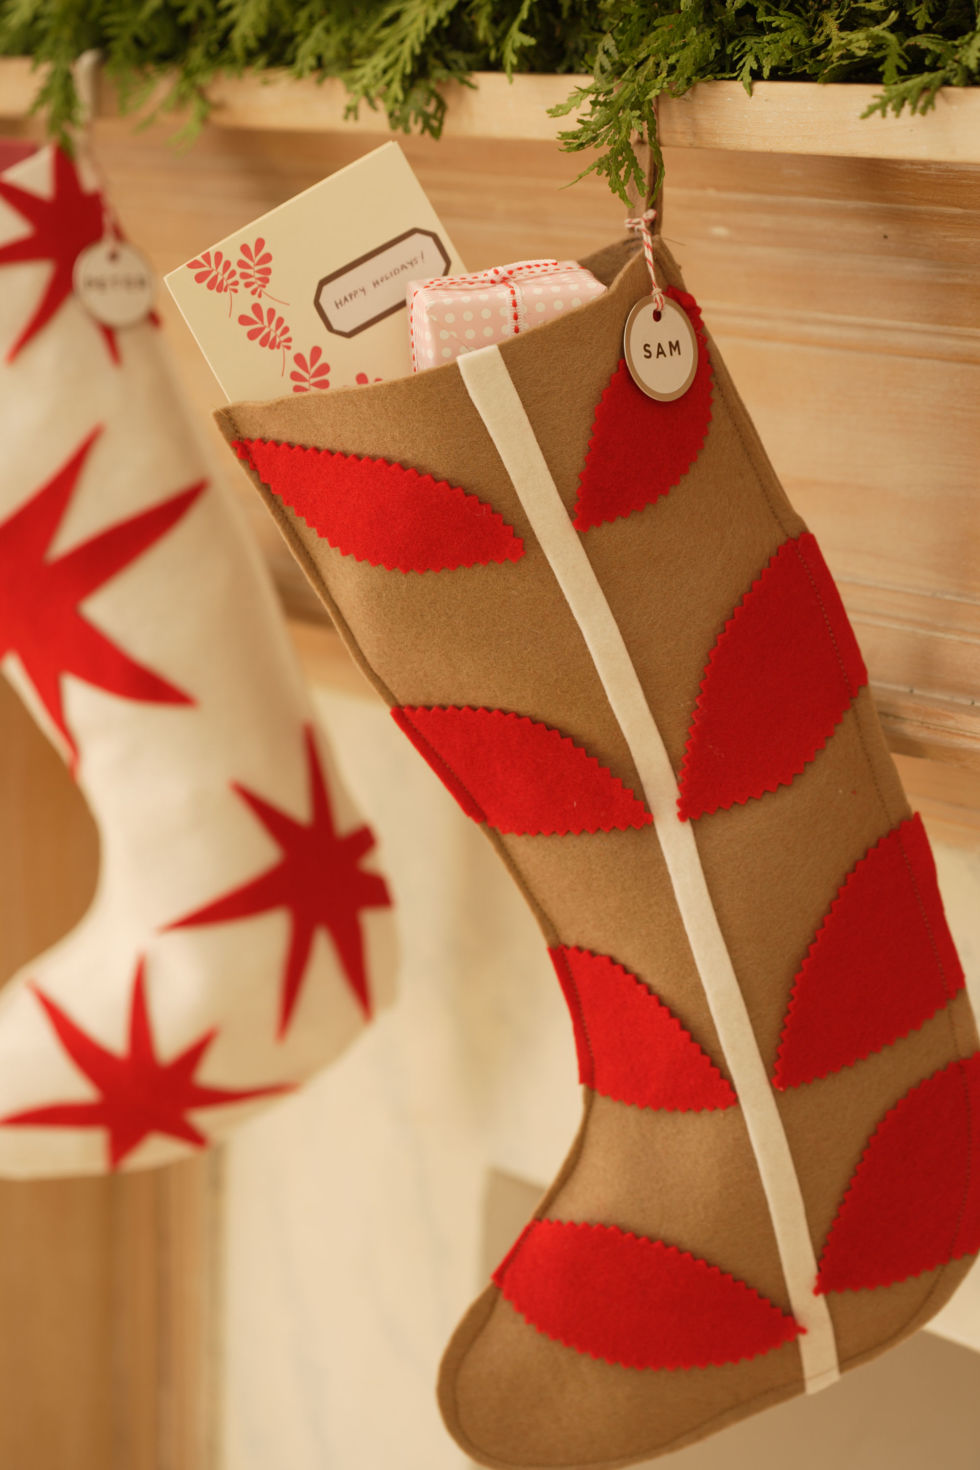 gallery-1447713459-stocking-detail1